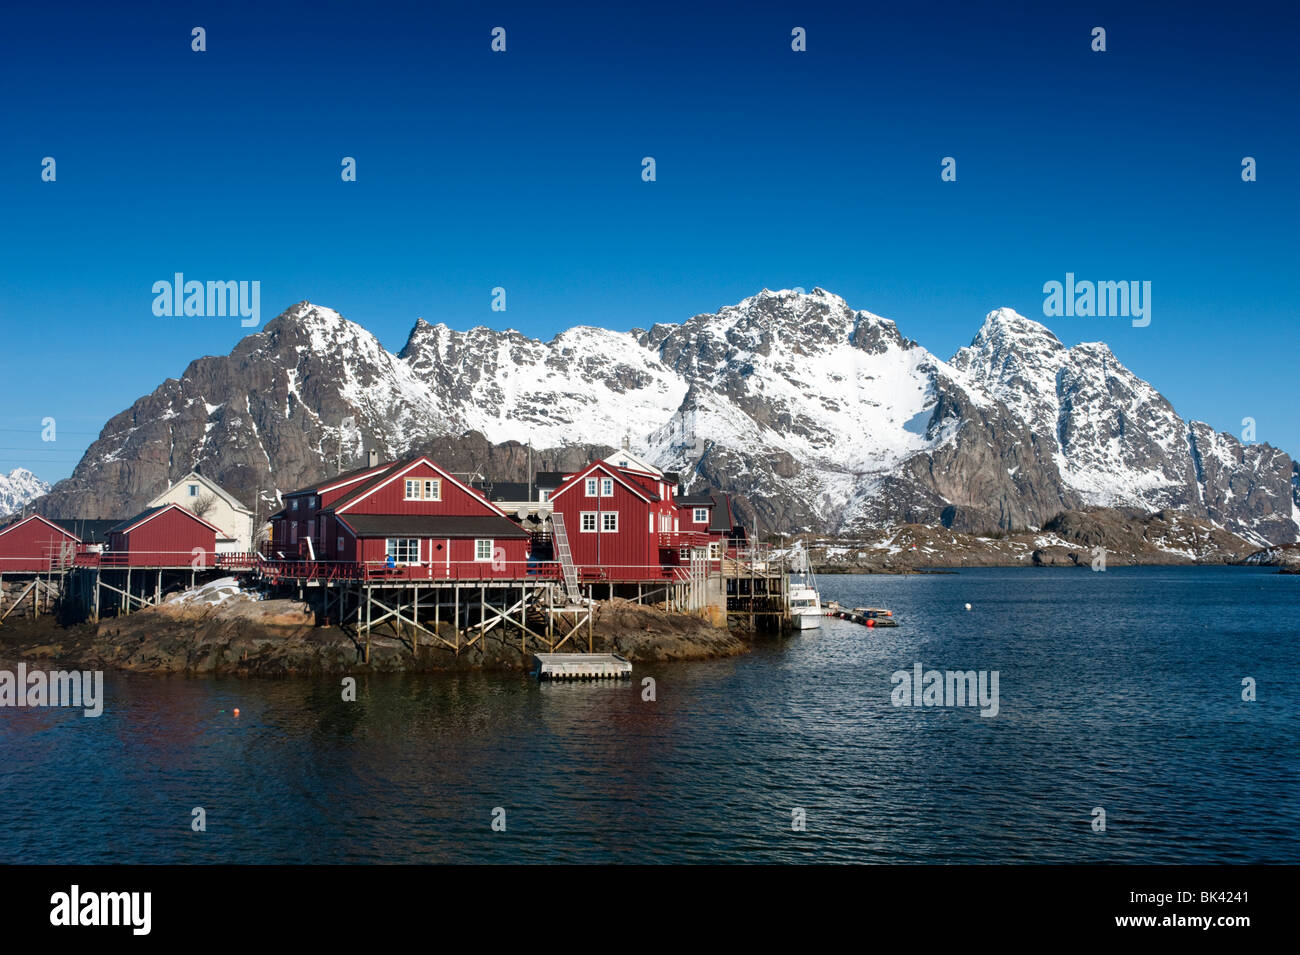 Traditional red wooden Rorbu fishermens` huts in village of Henningsvaer in Lofoten Islands in Norway Stock Photo